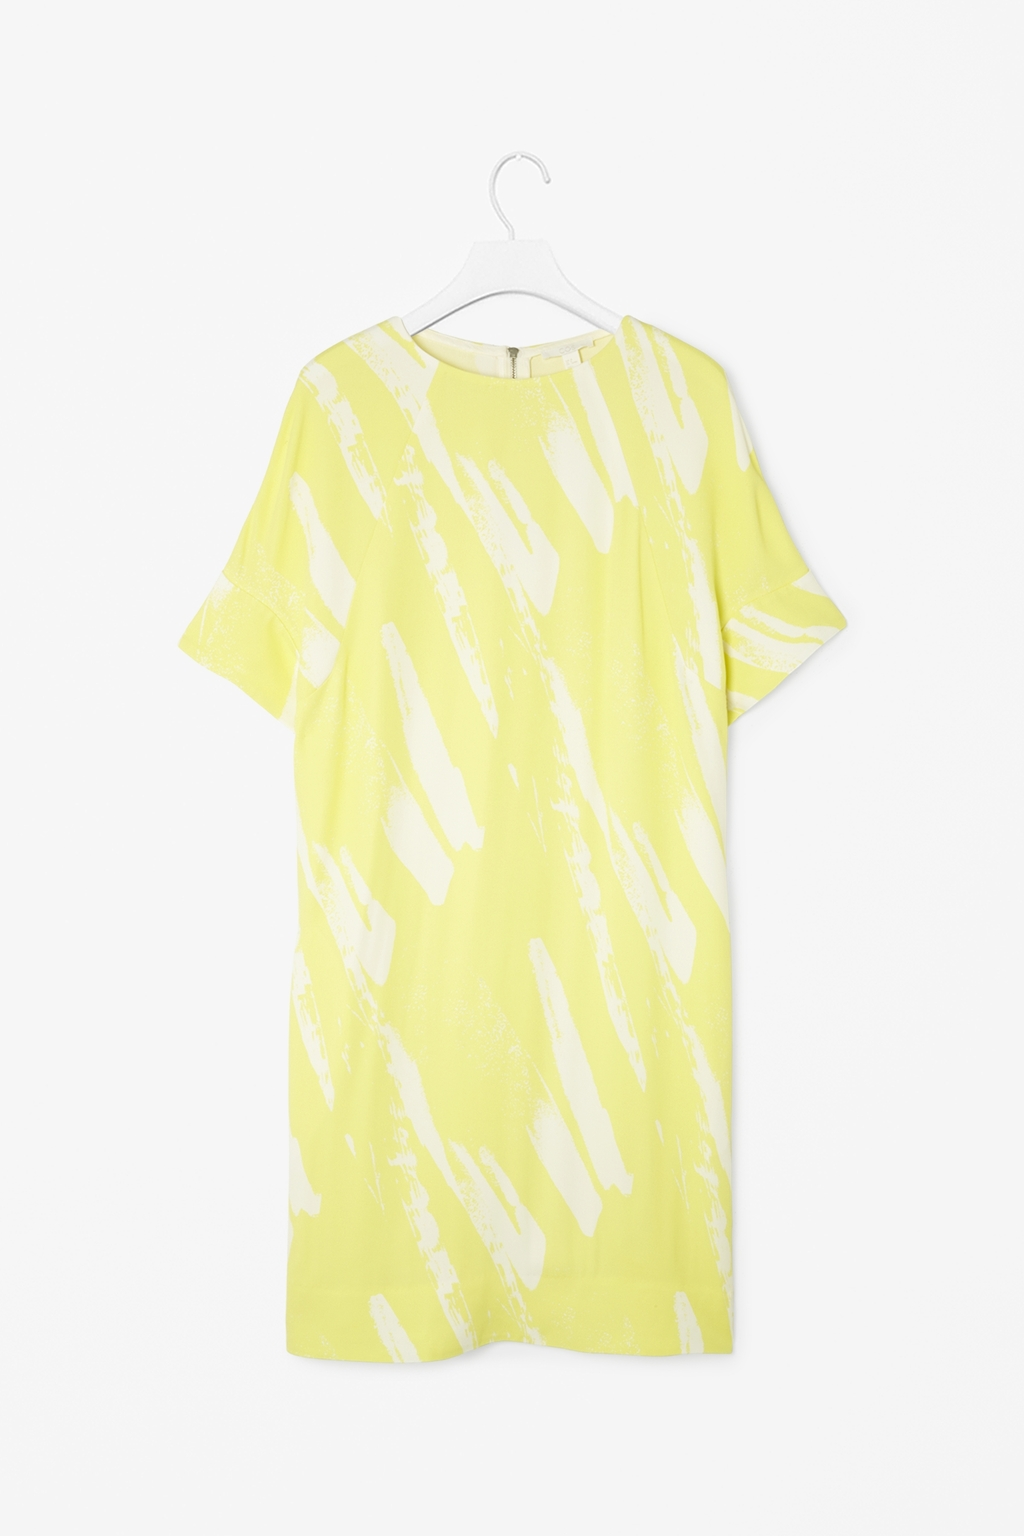 Rounded Shoulder Dress - style: t-shirt; fit: loose; secondary colour: white; predominant colour: primrose yellow; occasions: casual, evening, occasion, creative work; length: just above the knee; fibres: viscose/rayon - 100%; neckline: crew; sleeve length: short sleeve; sleeve style: standard; texture group: crepes; pattern type: fabric; pattern size: standard; pattern: patterned/print; trends: sorbet shades, art-party prints; season: s/s 2014